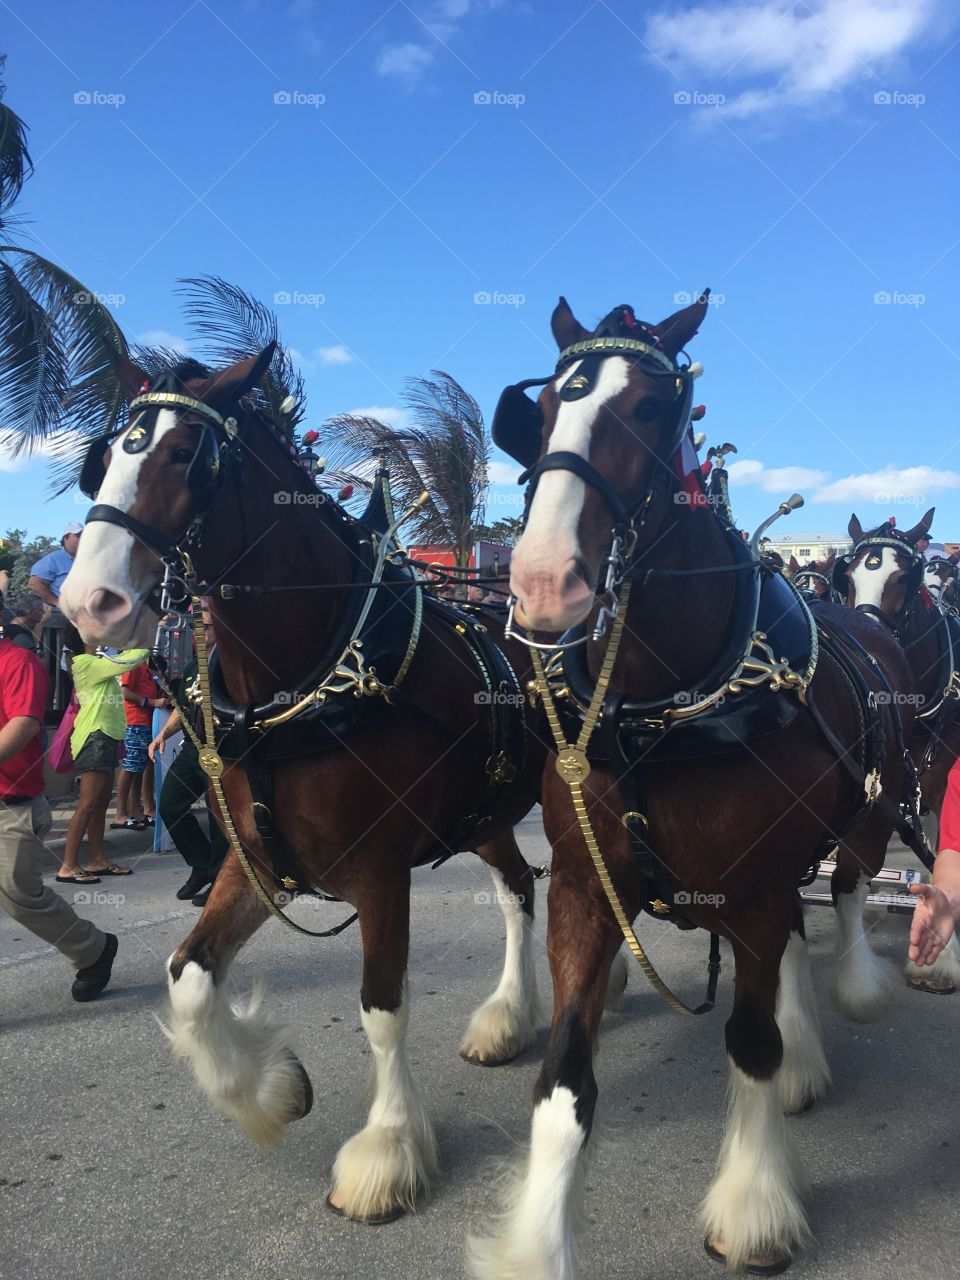 Clydesdale Budweiser horses trotting